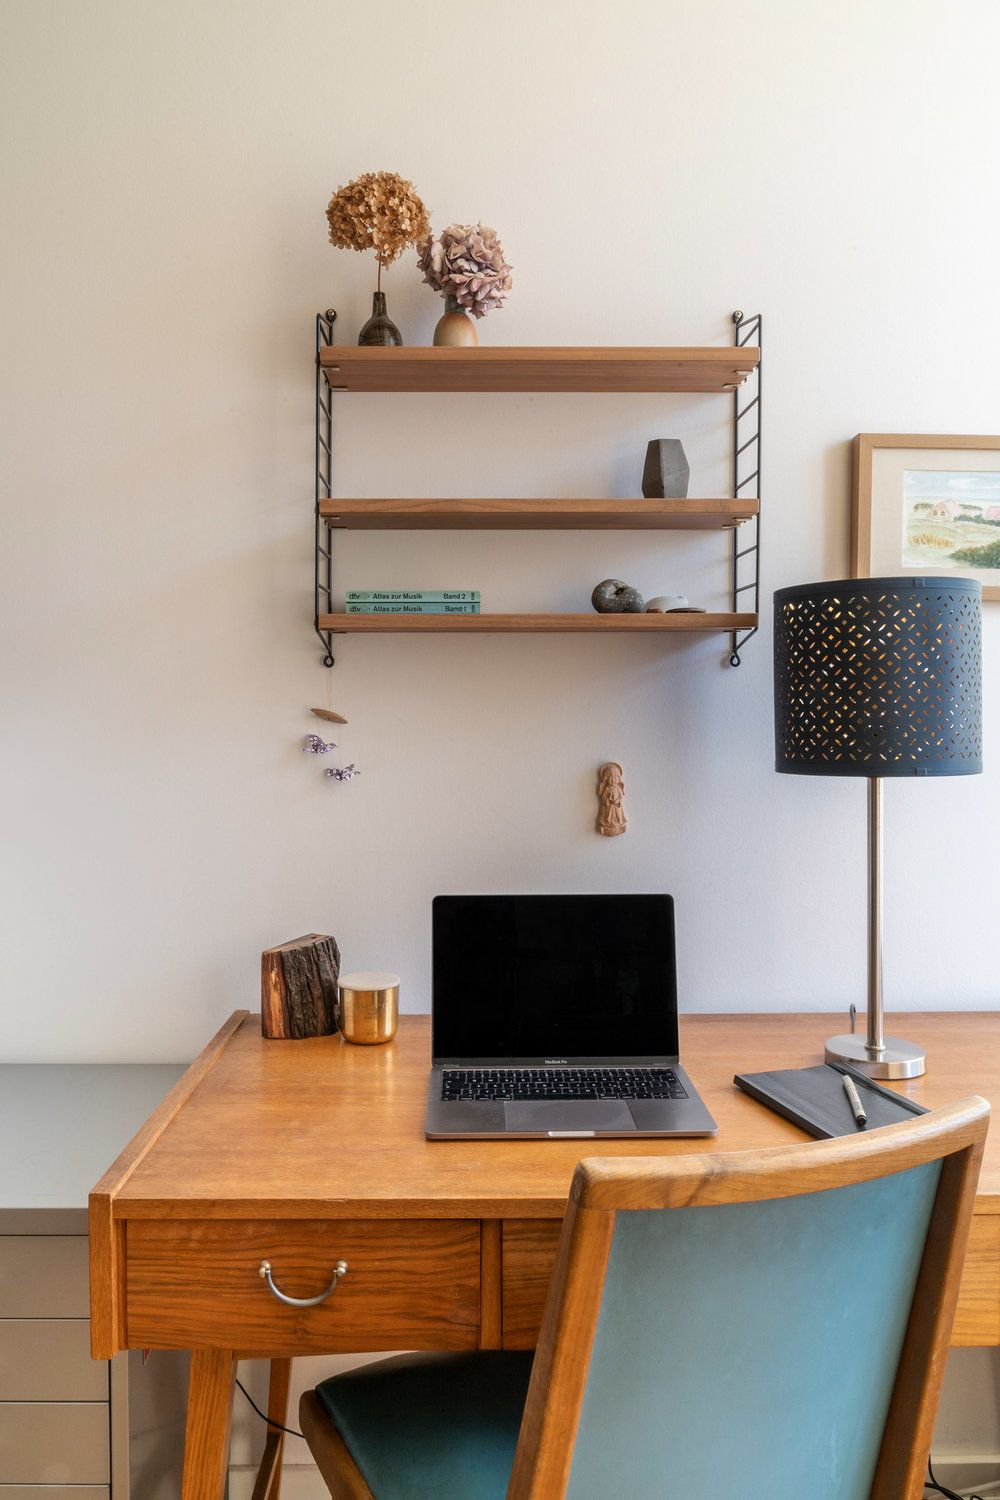 Vintage combined with the classic String shelf. A beautiful home office space which is functional, tidy and has character. #study #homeoffice #vintagefurniture #hausoflund